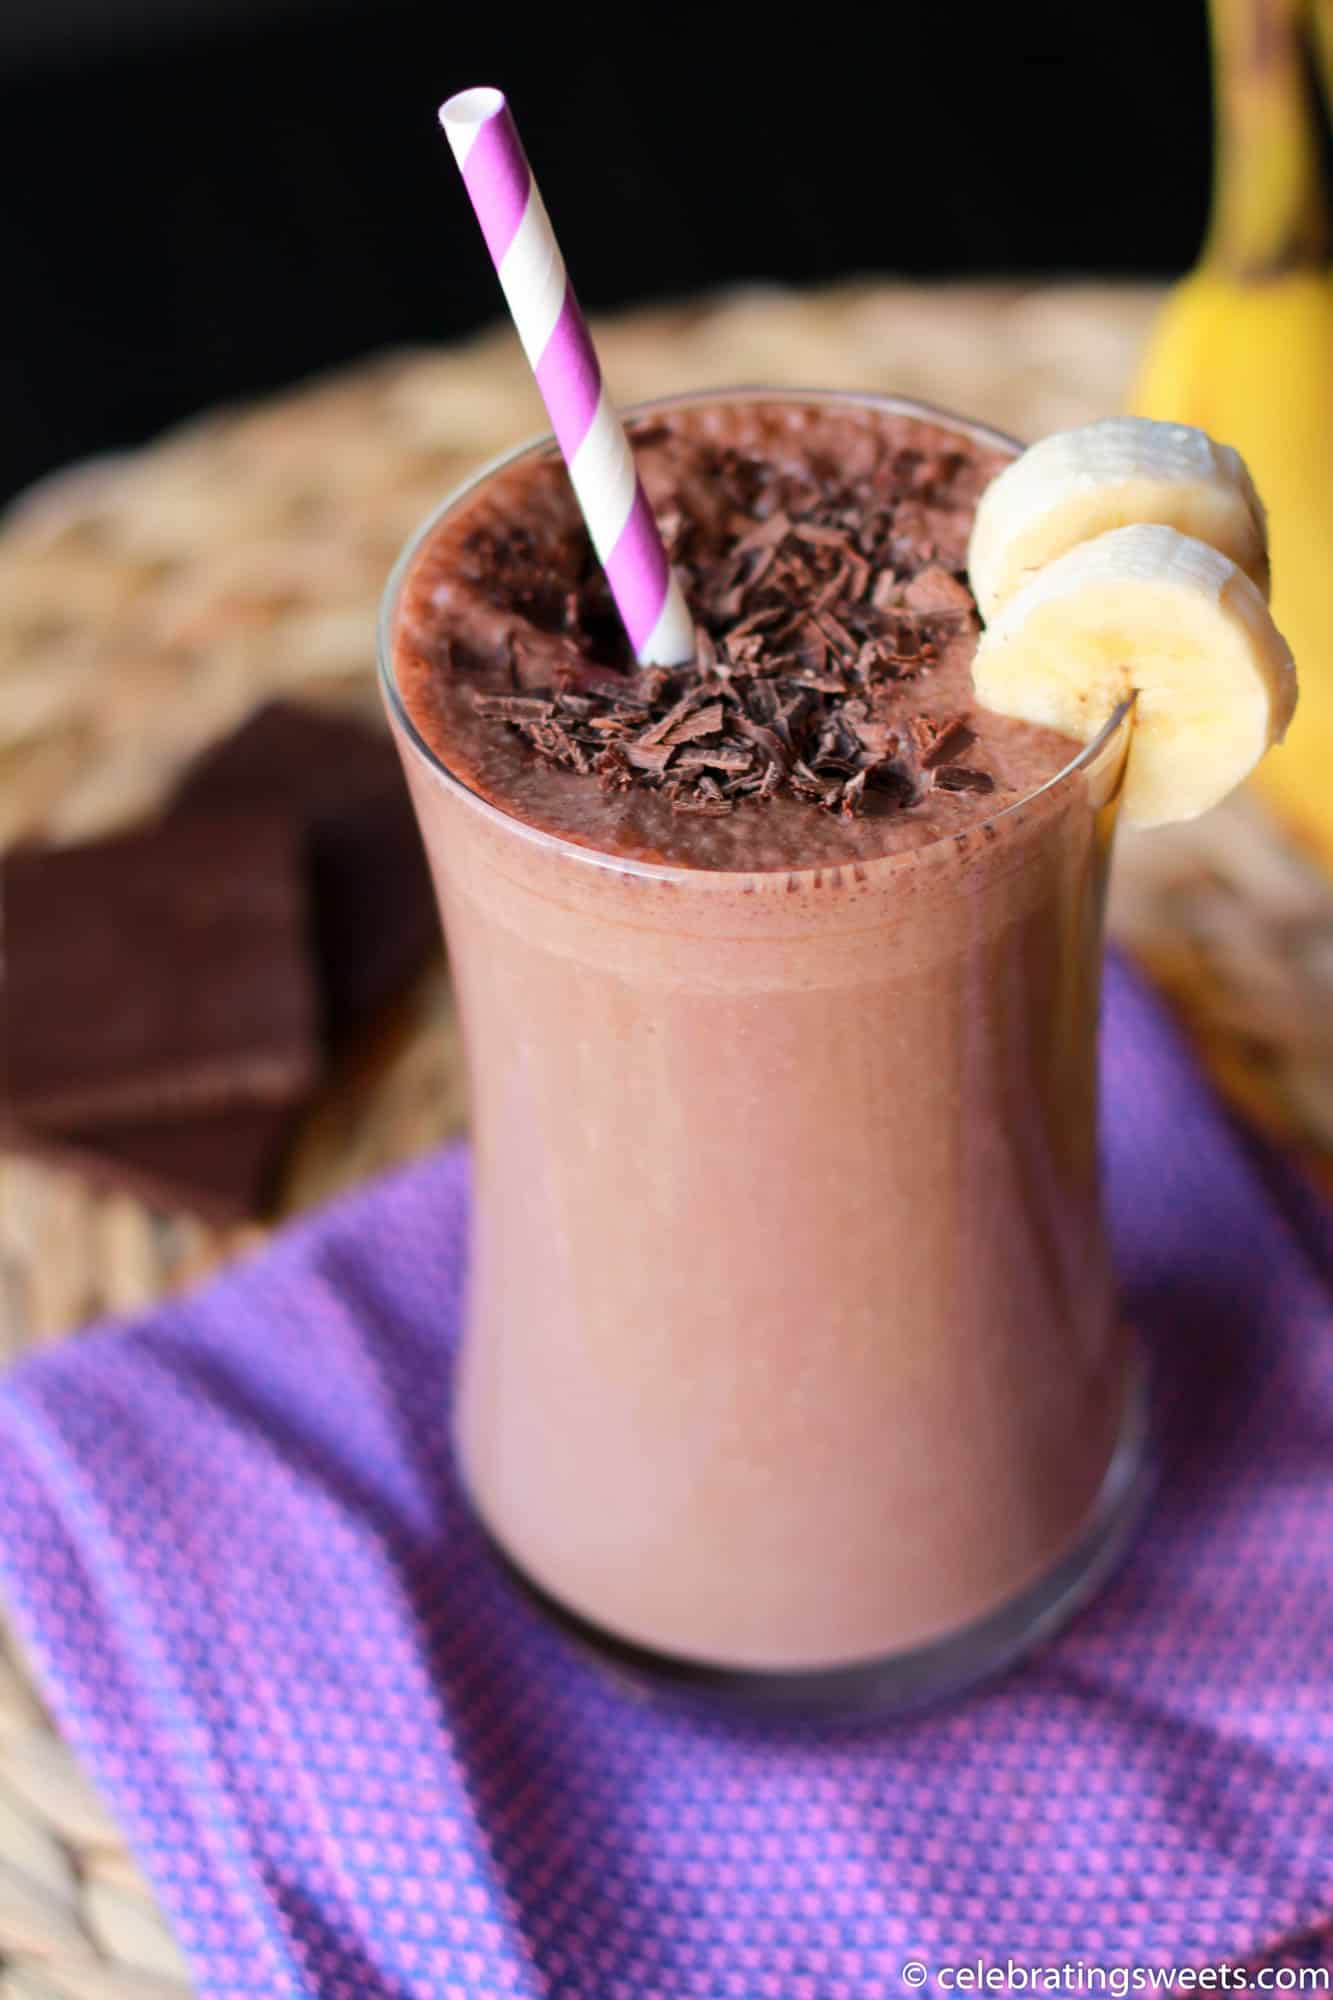 How To Make A Chocolate Smoothie Without Bananas